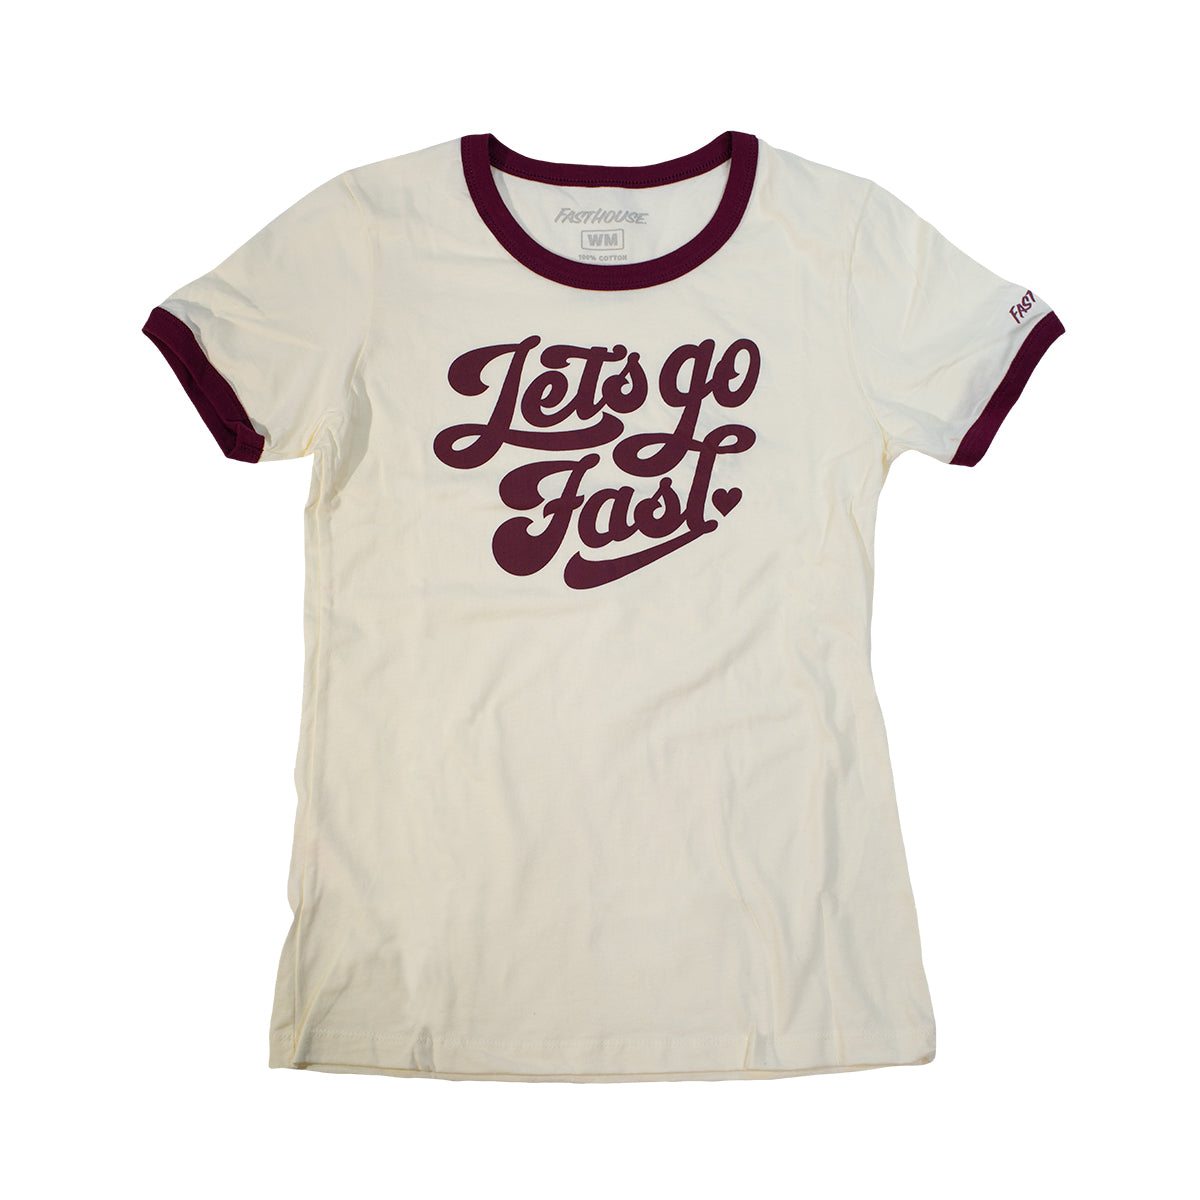 Fasthouse - Let's Go Womens Ringer Tee - Natural/Maroon